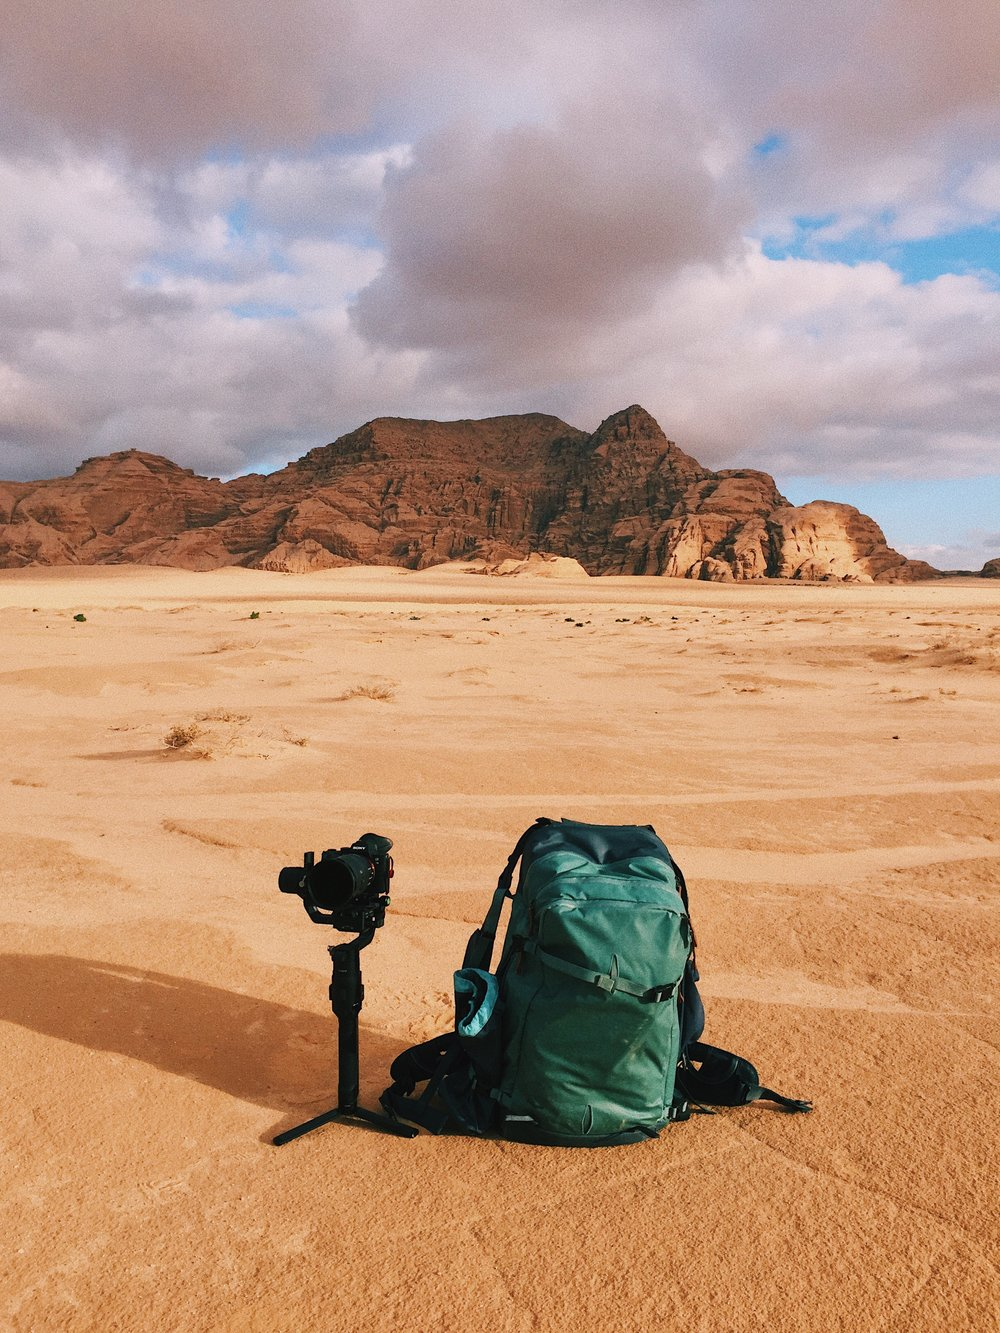 The Shimoda Designs Explore 40 in the desert. I've been strapping the Ronin-S to the tripod pocket.